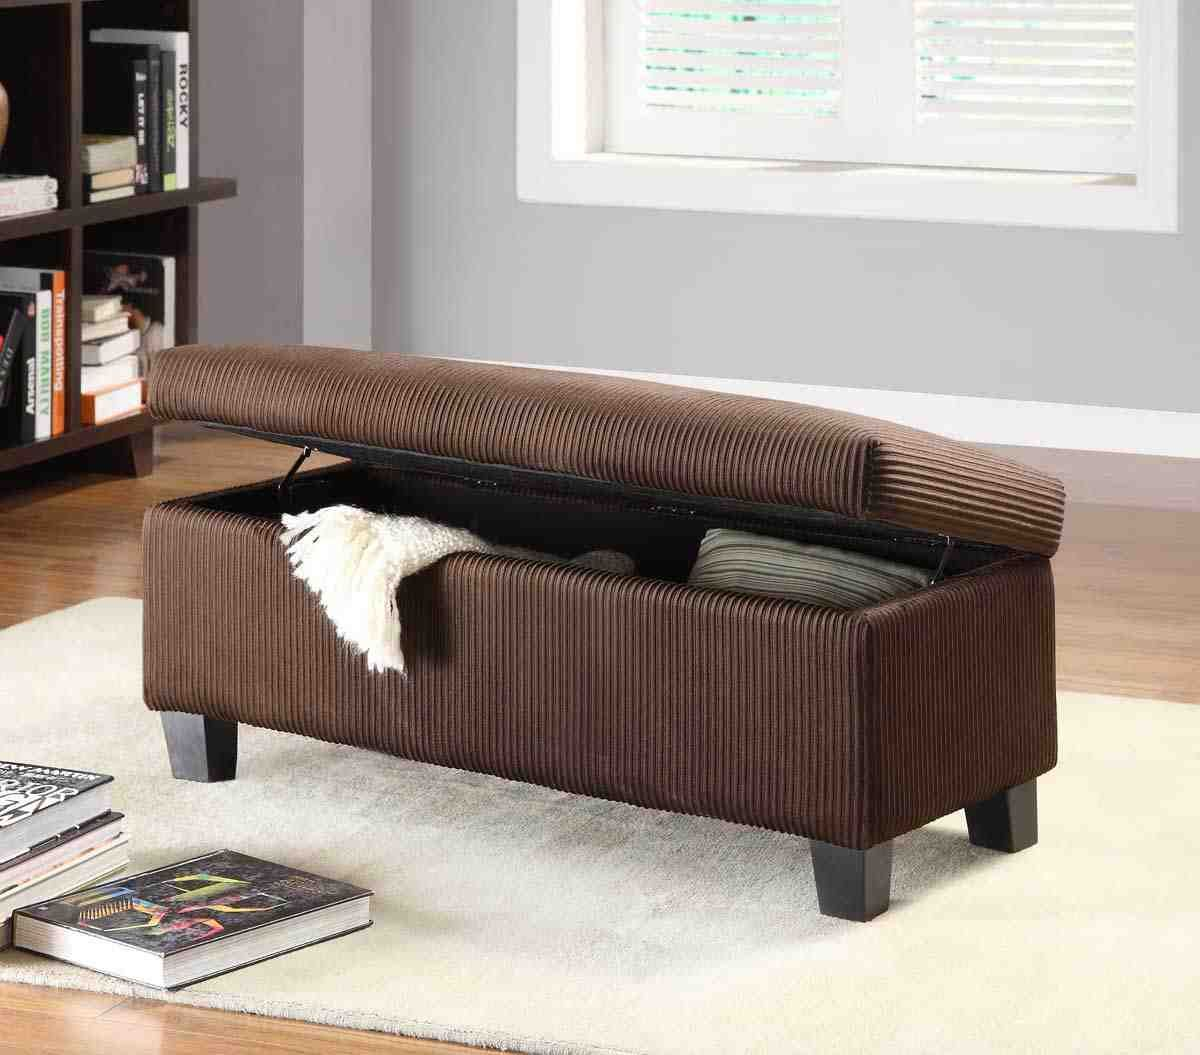 Storage Benches For Living Room Storage Ottoman Bench Storage Ottoman Bench Pinterest